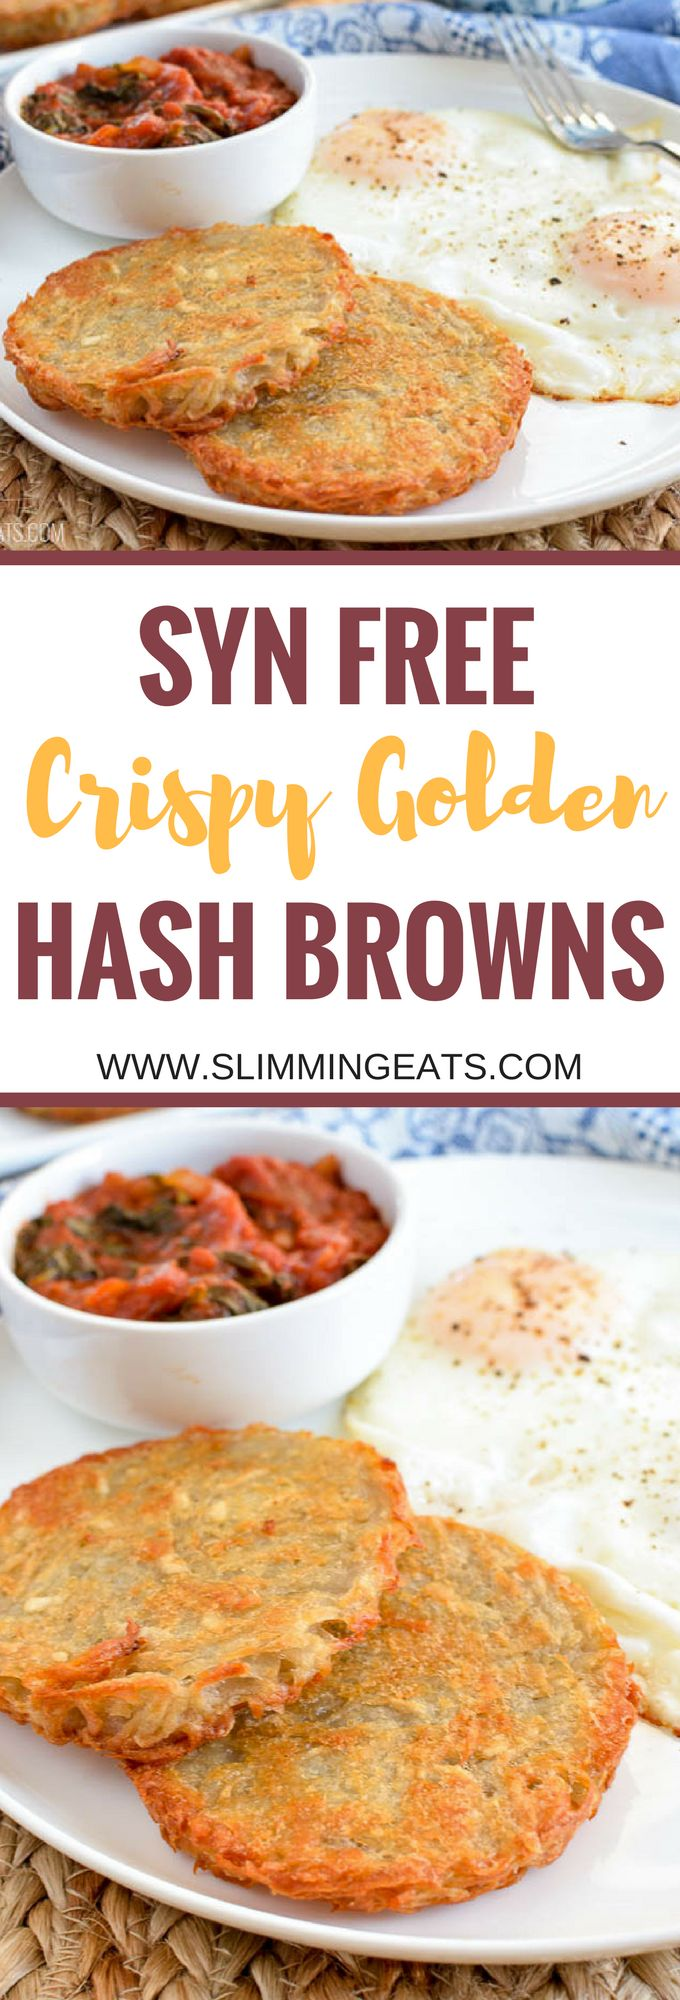 Slimming Eats Syn Free Crispy Golden Hash Browns. This gluten free, free vegetarian and paleo recipe is incredible!